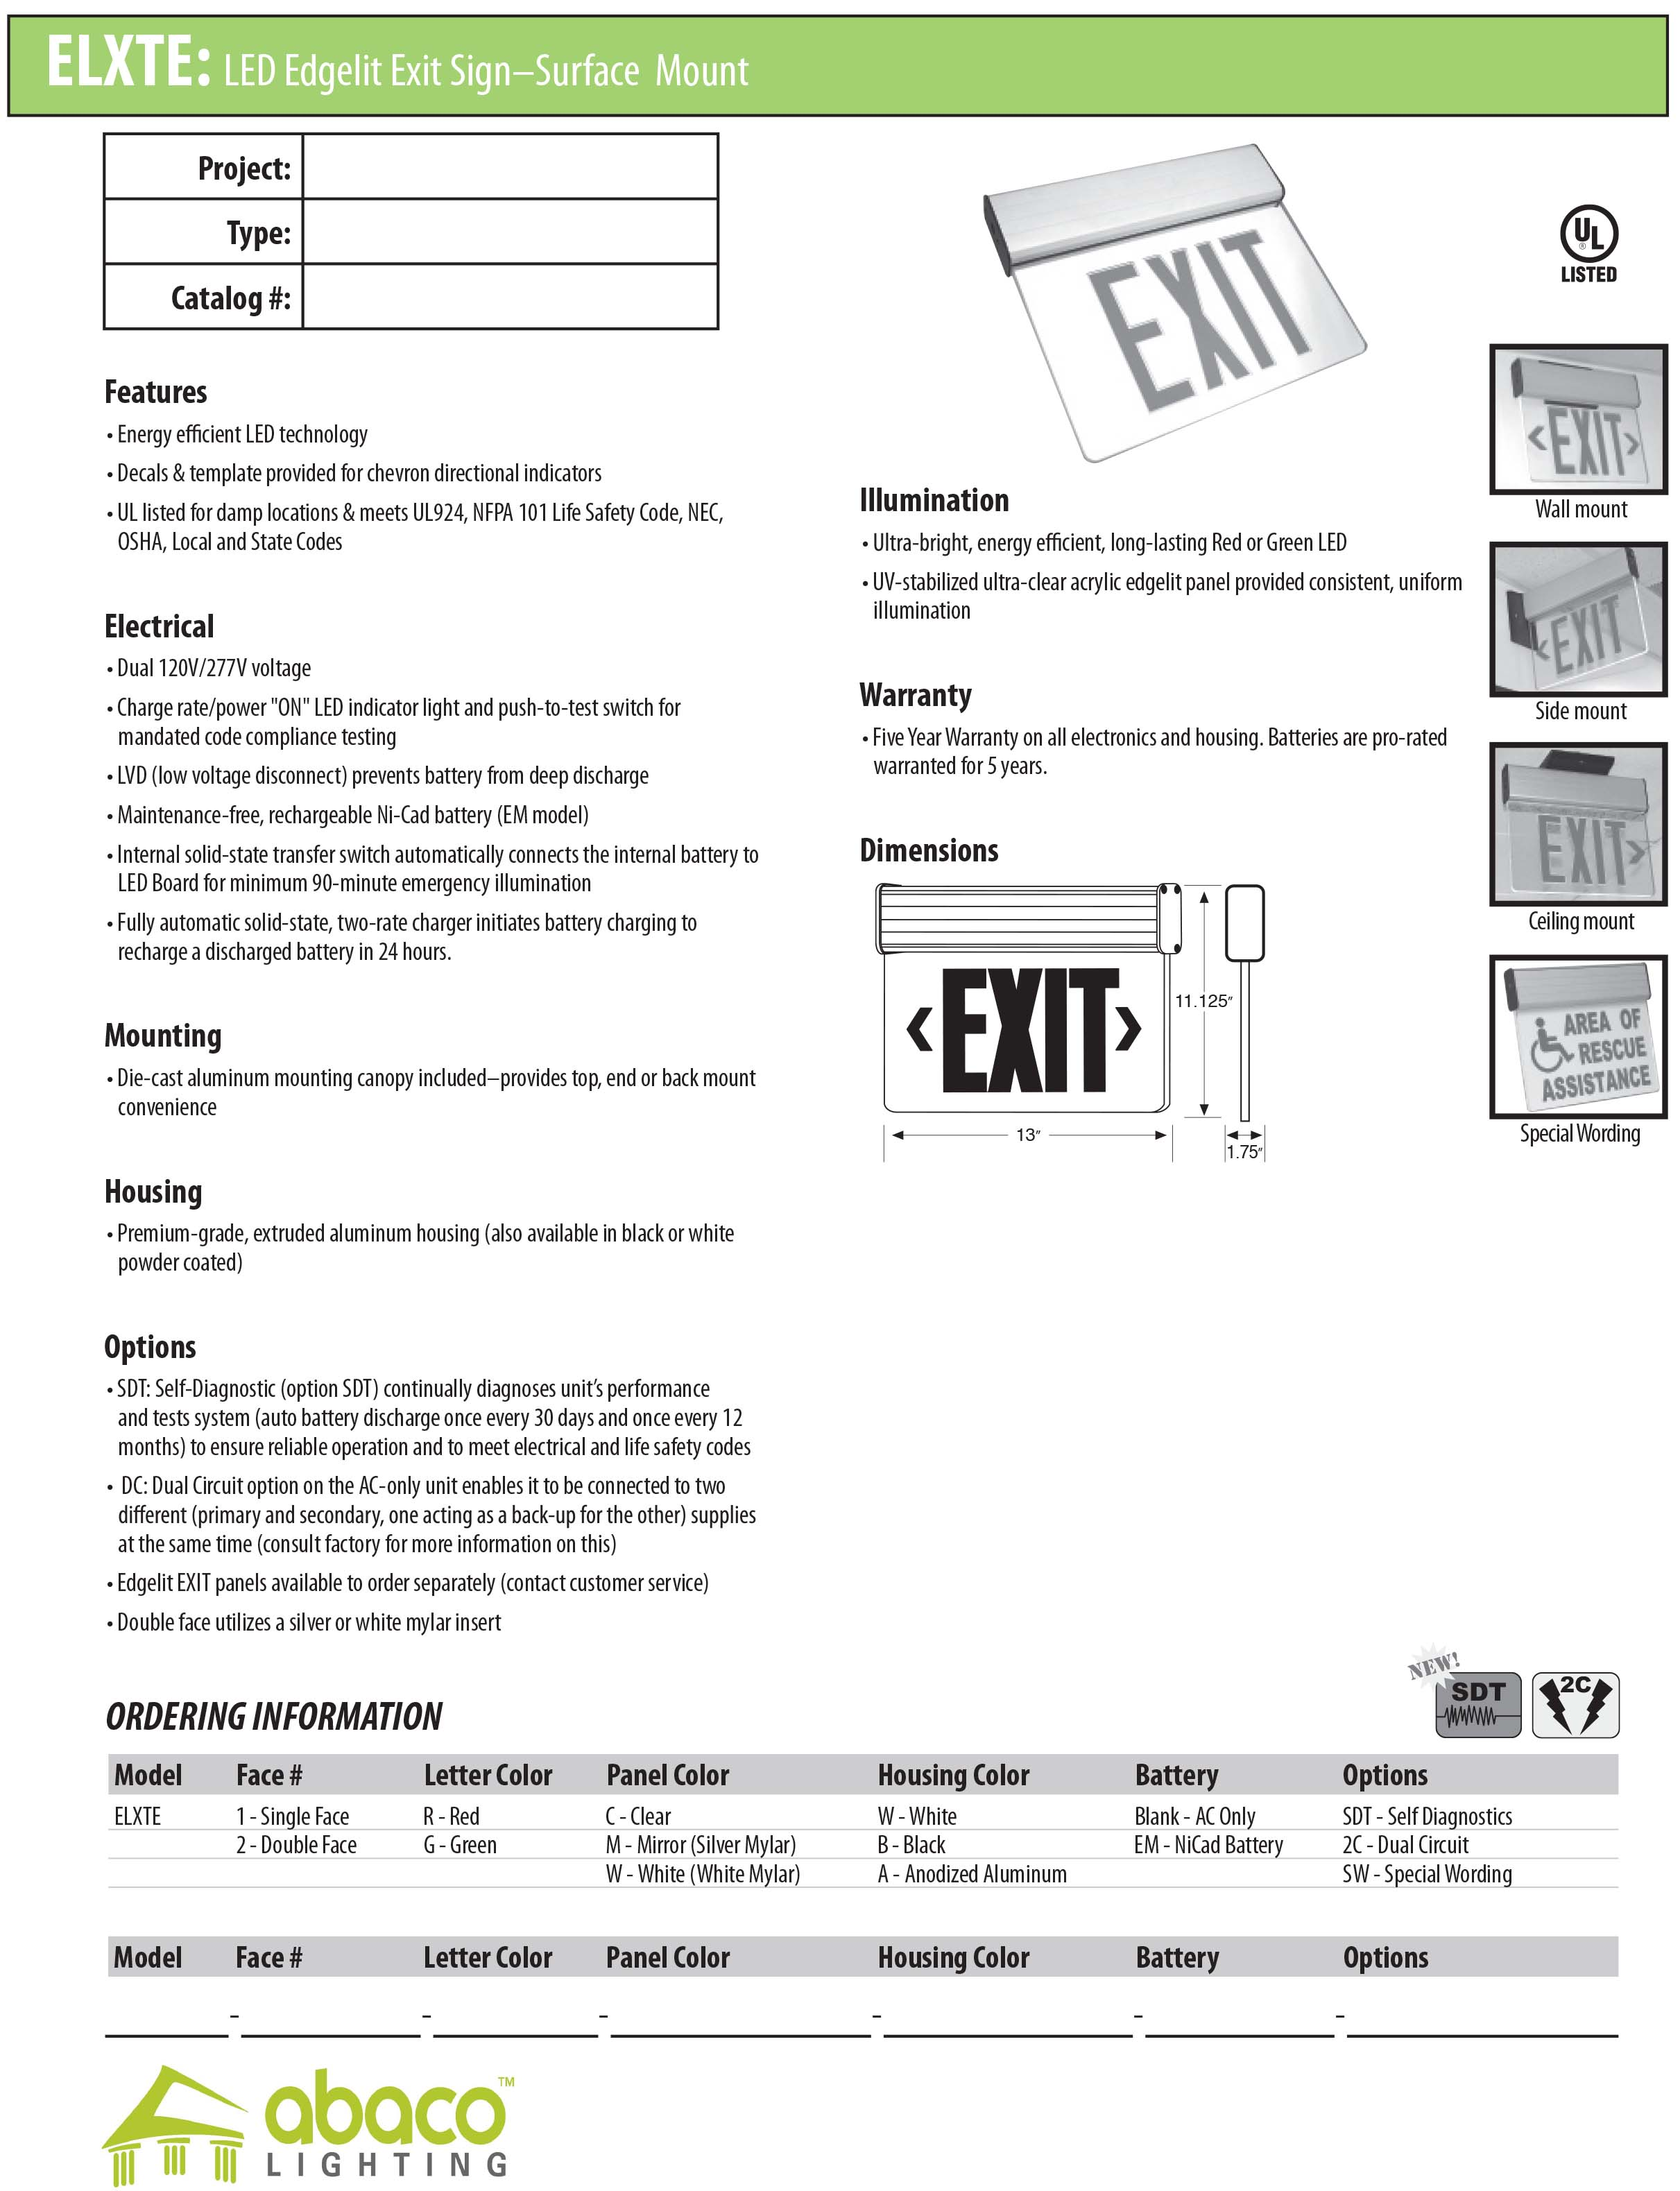 Exit Emergency Lighting Abaco Automatic Low Power Light Led Edgelit Signsurface Mount